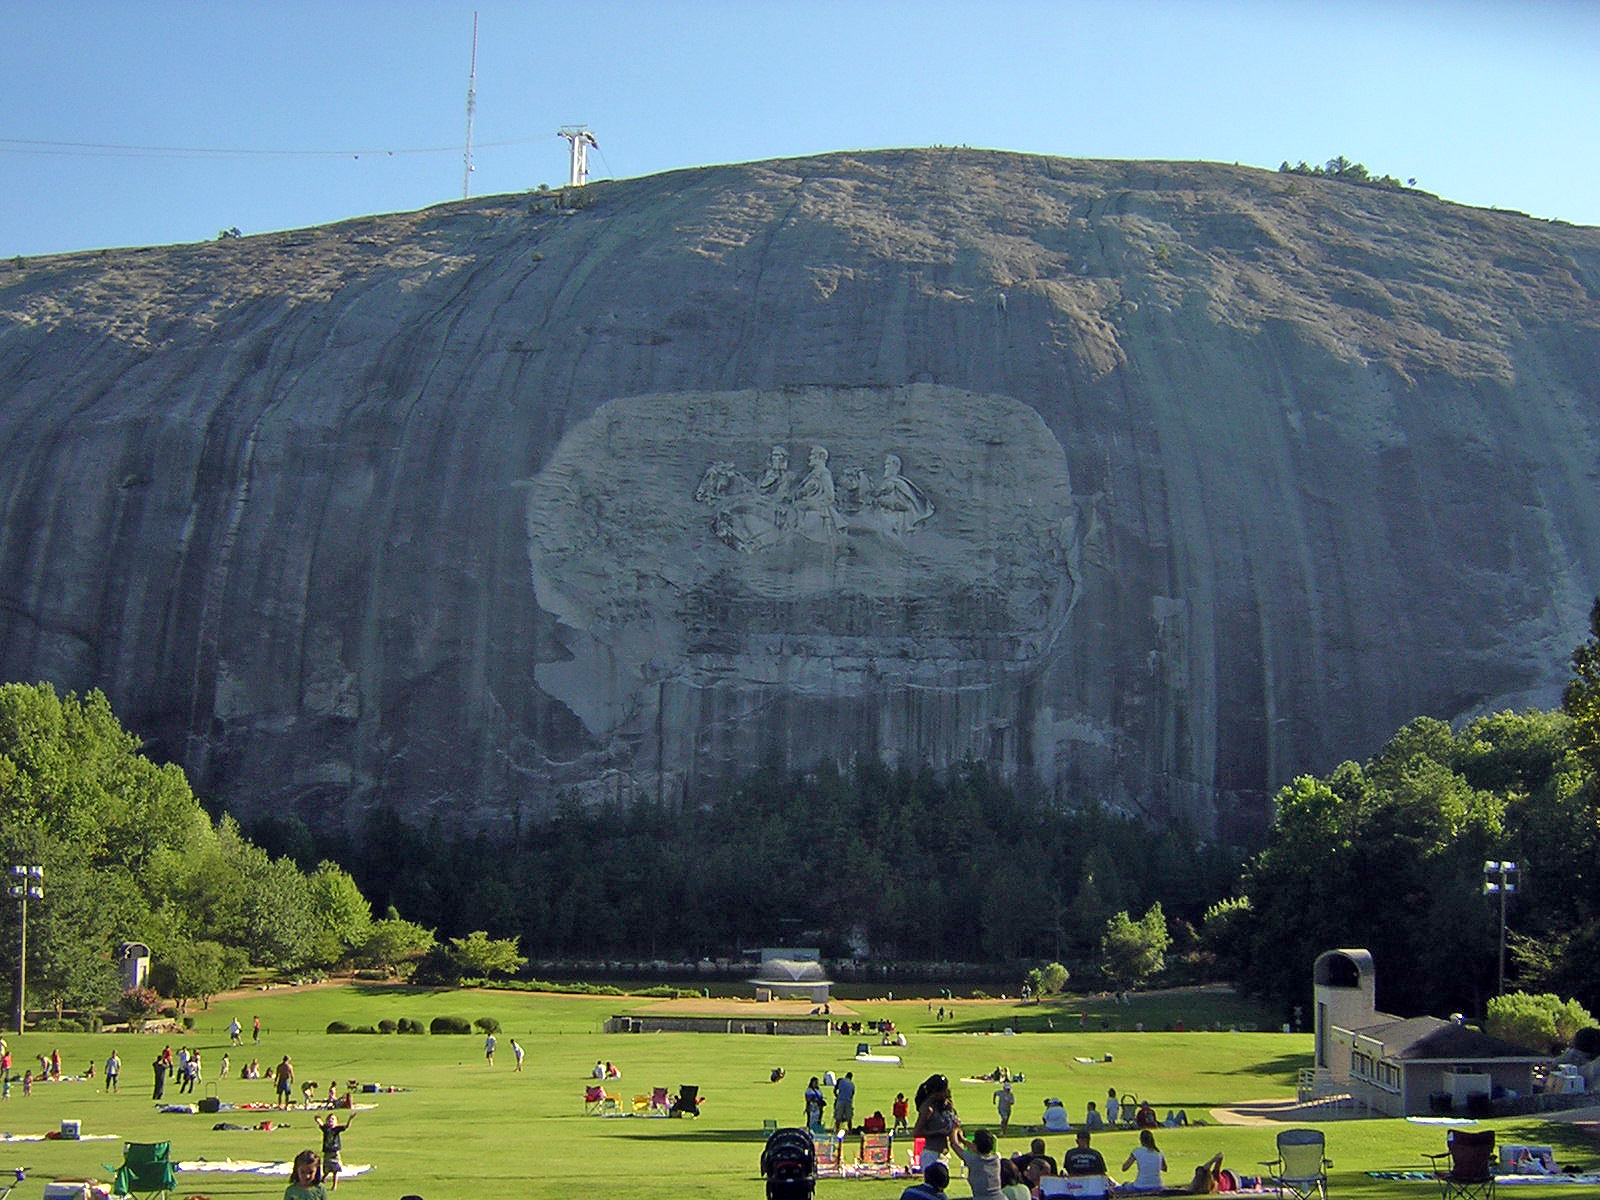 BLAST Stone Mountain.  If we don't in 10,000 AD those carvings will be our